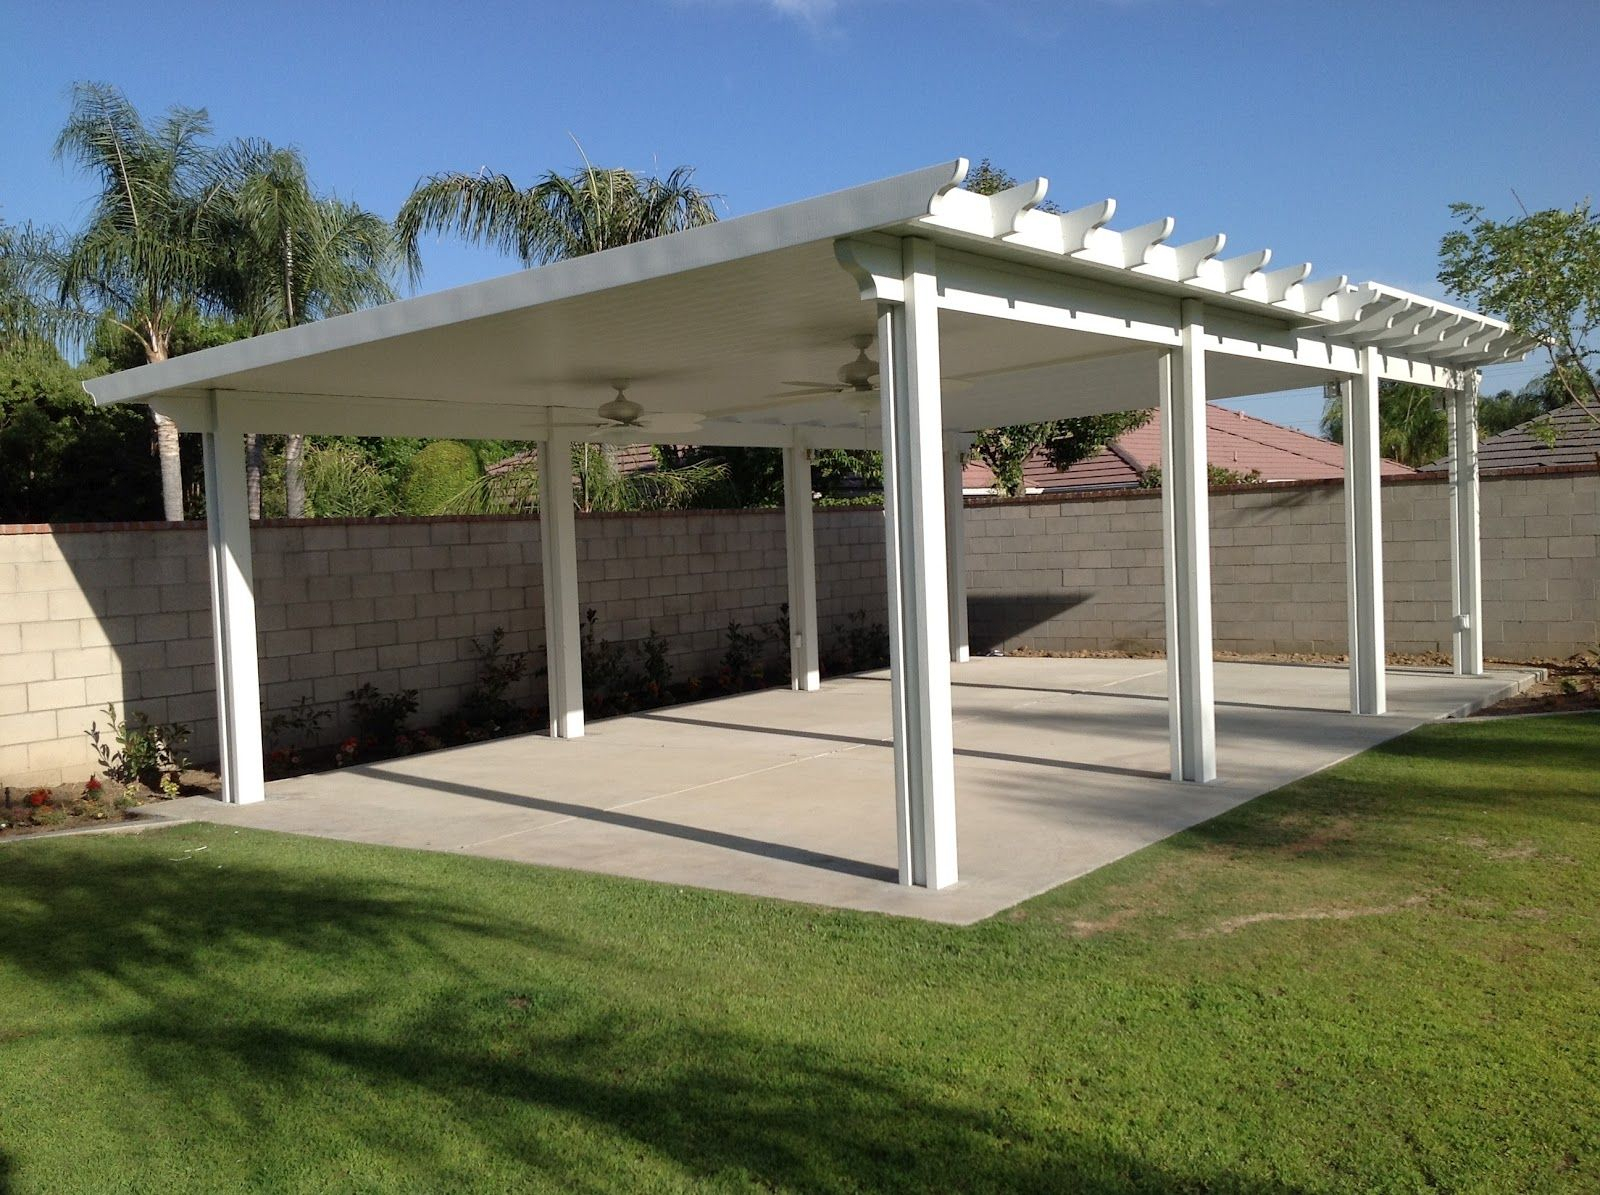 Stand Alone Designs : Stand alone covered patio designs ideas